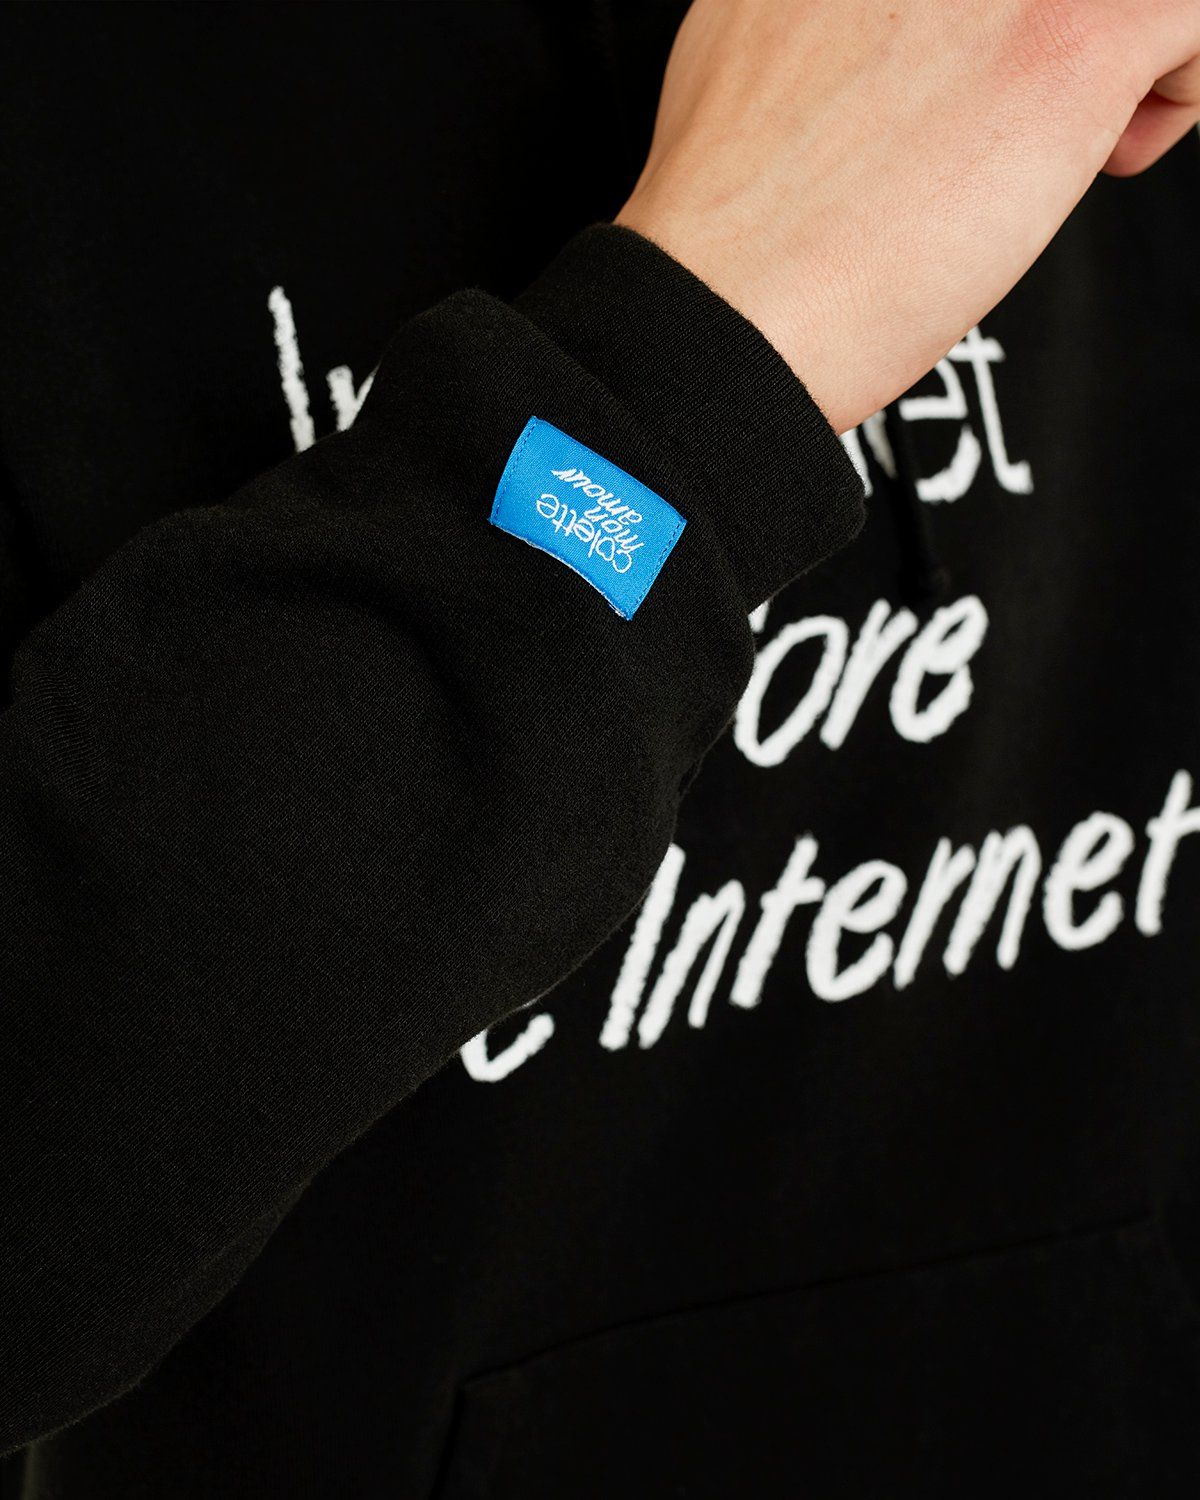 colette Mon Amour - The Internet Before The Internet Hoodie Black - Image 3